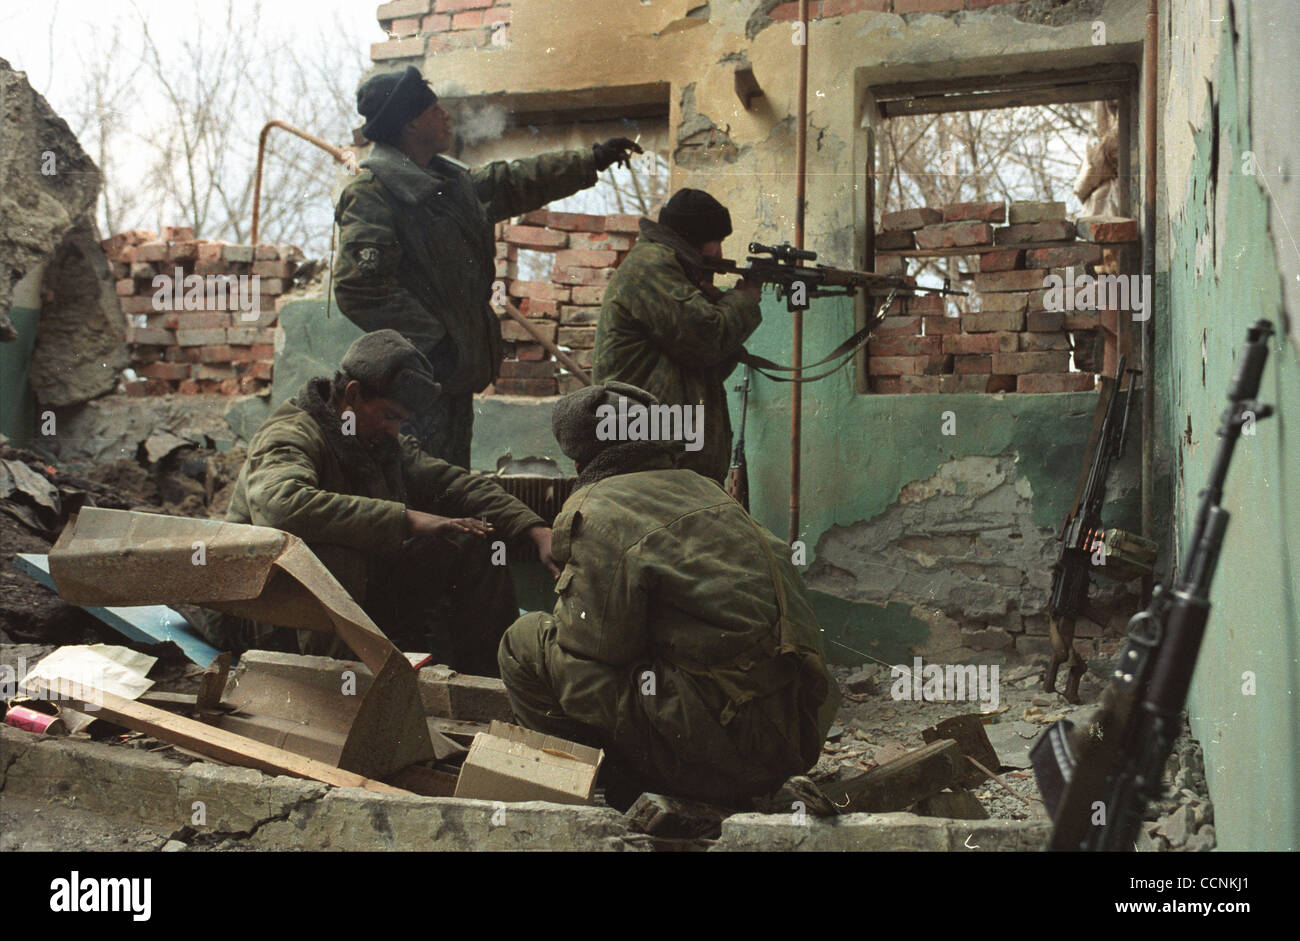 Snipers of russian federal troops at the army operation in Grozny suburbs to destroy chechen rebels. - Stock Image